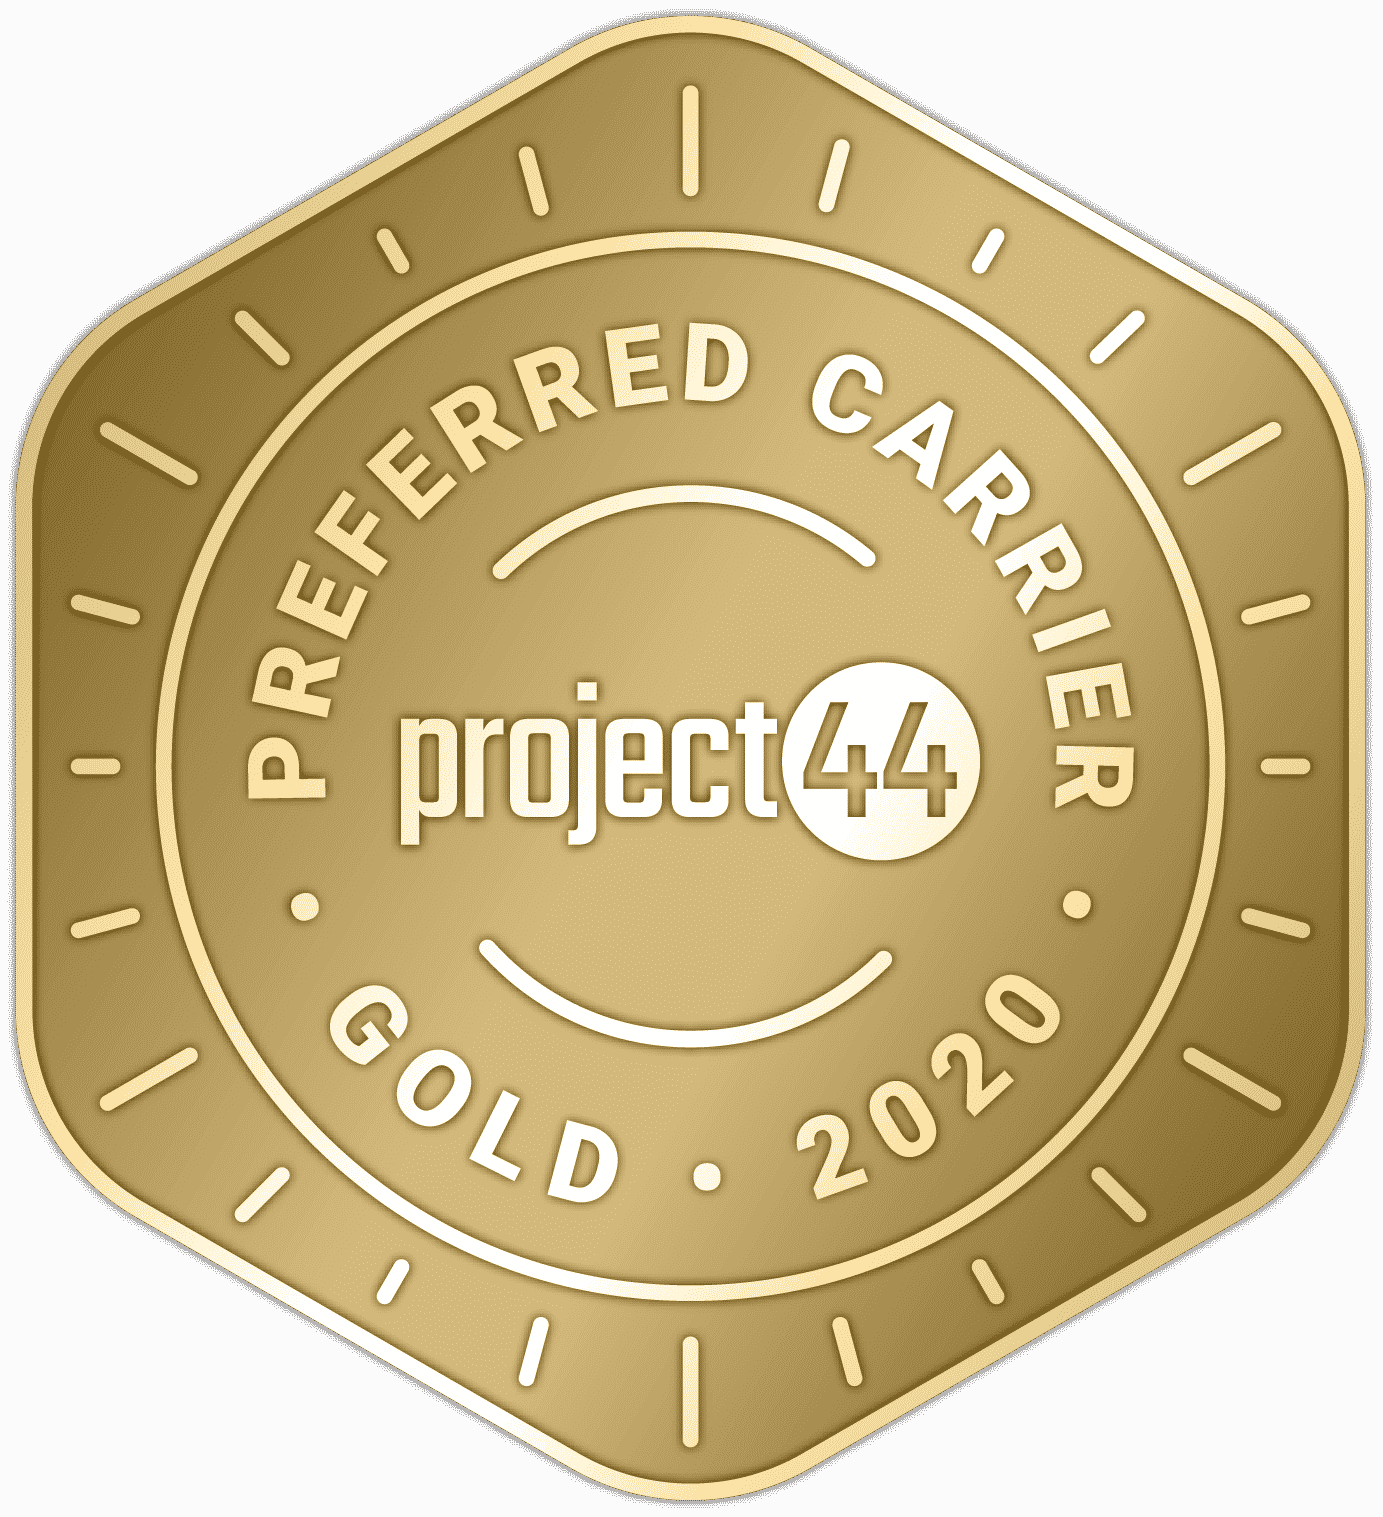 P44 Preferred Carrier Badge Gold 2020 | FW Logistics